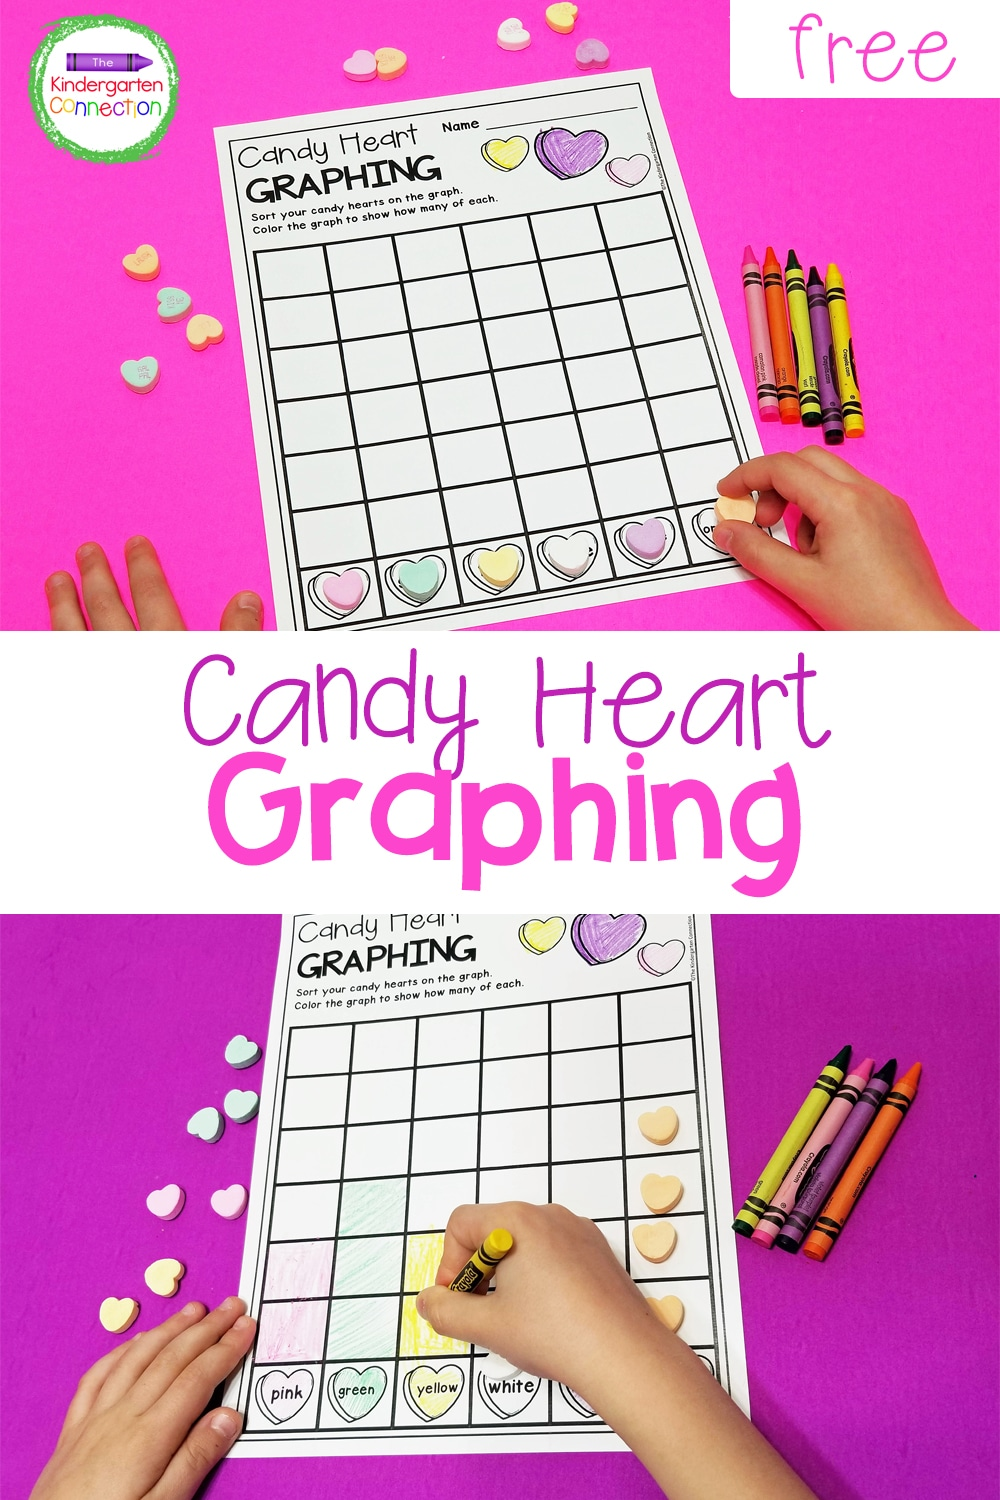 This free candy heart graphing printable makes a fun math center and strengthens counting, sorting, and graphing skills all at once!